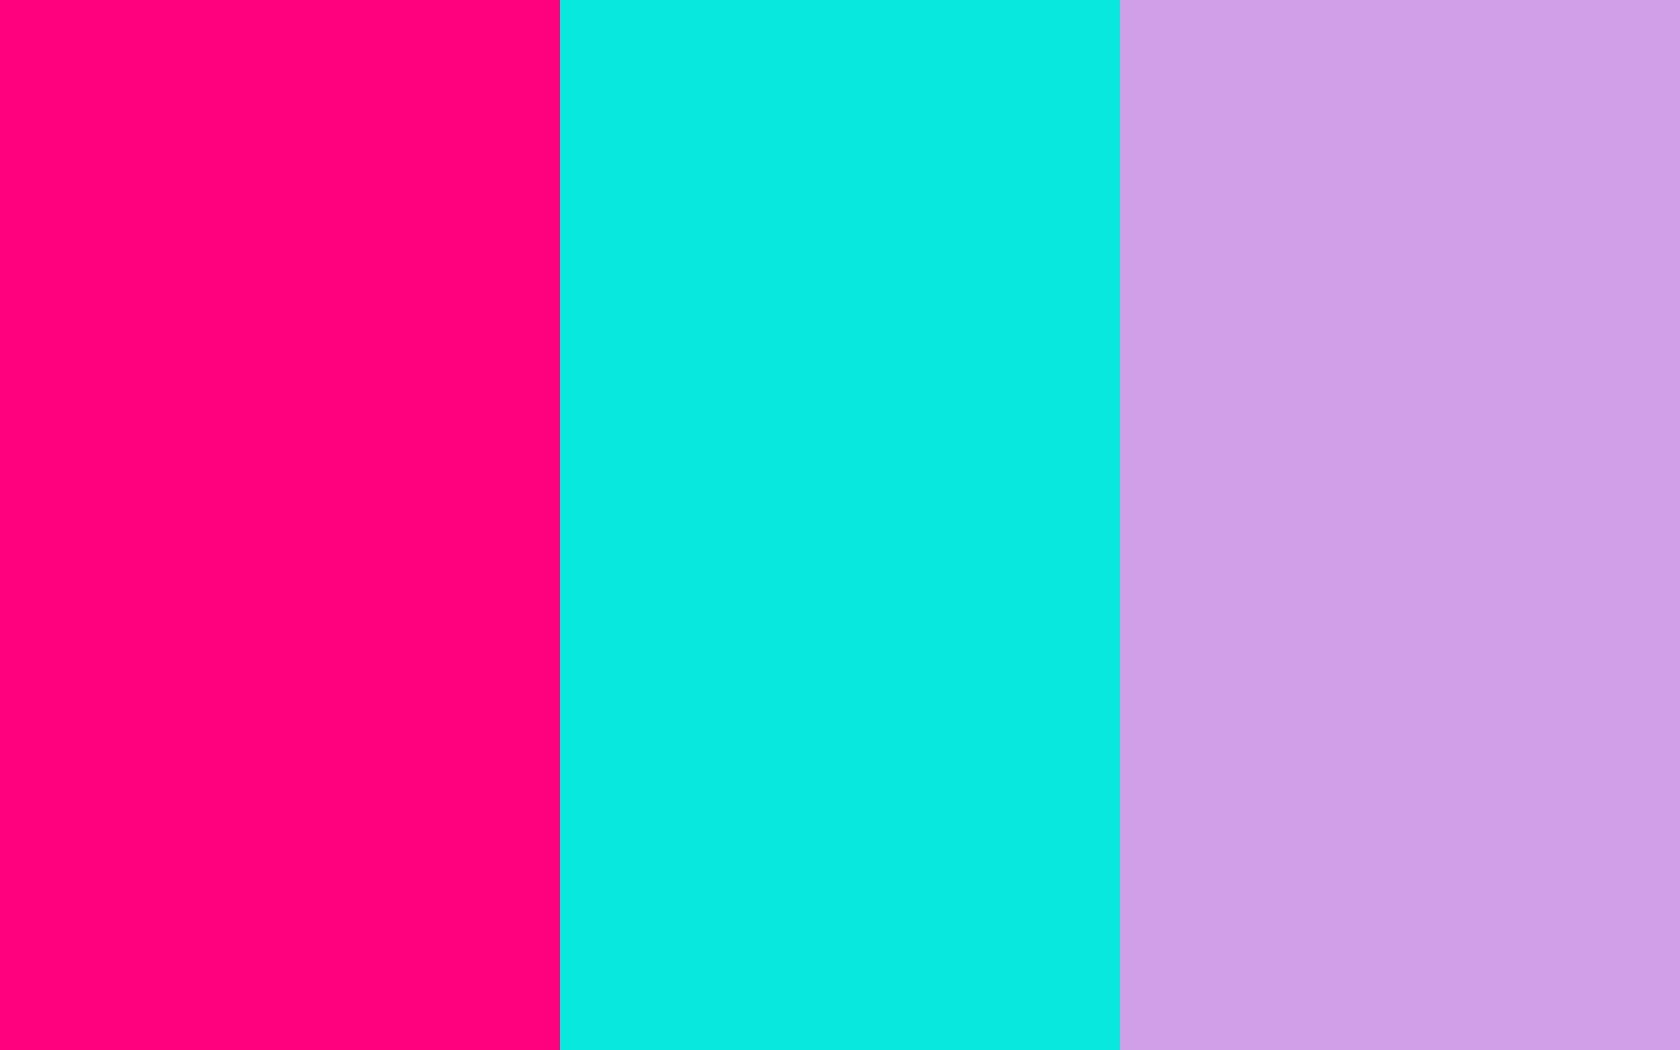 Free 1680x1050 Resolution Bright Pink Turquoise And Ube